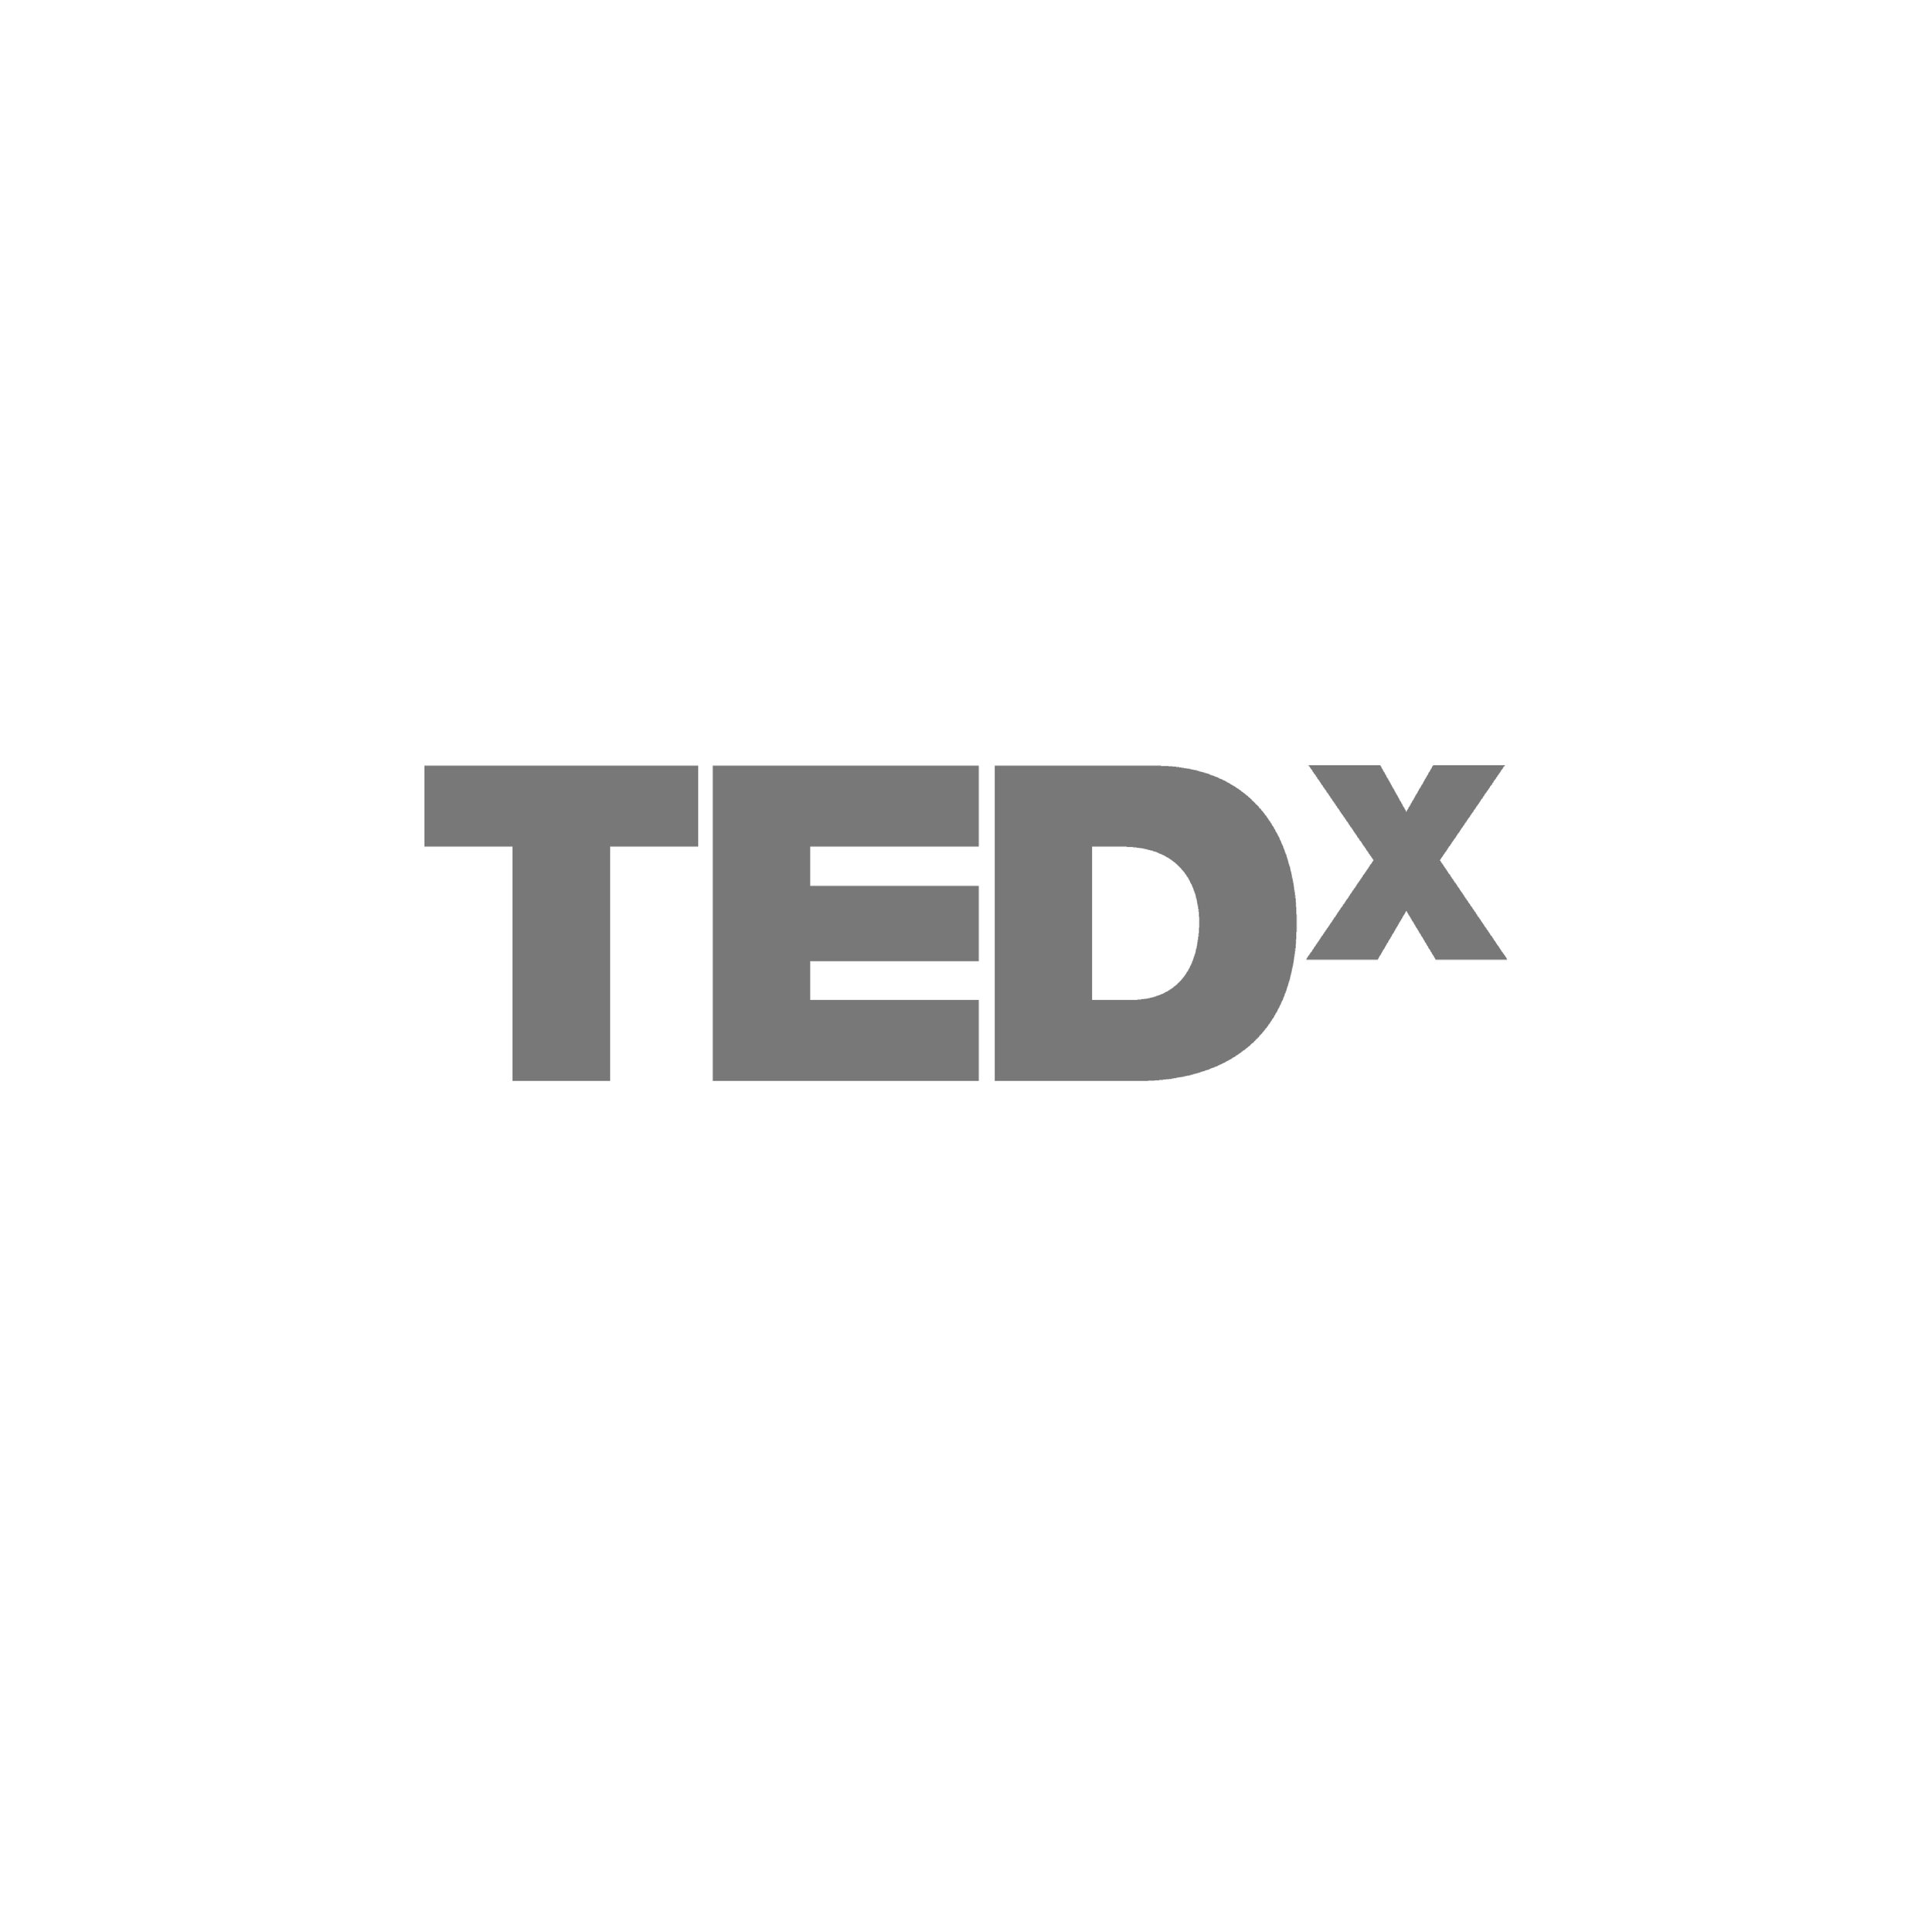 TEDx Independently orgaized TED events